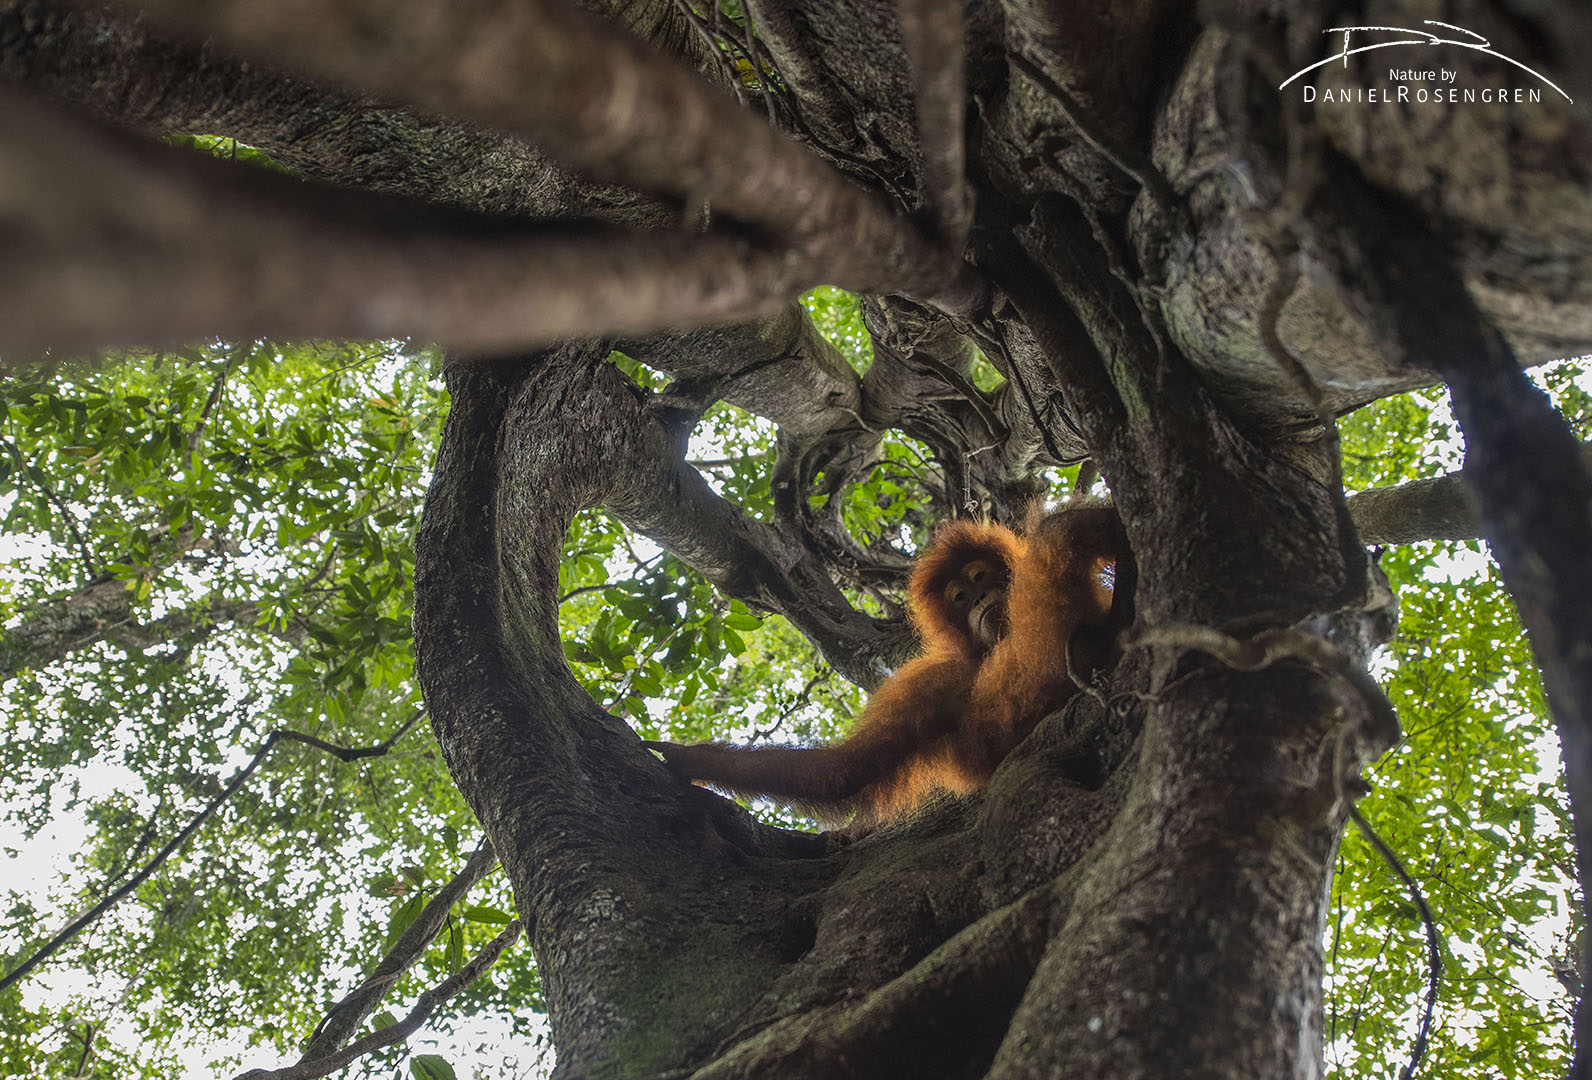 A Orang-utan enjoying sitting in a Strangler fig. © Daniel Rosengren